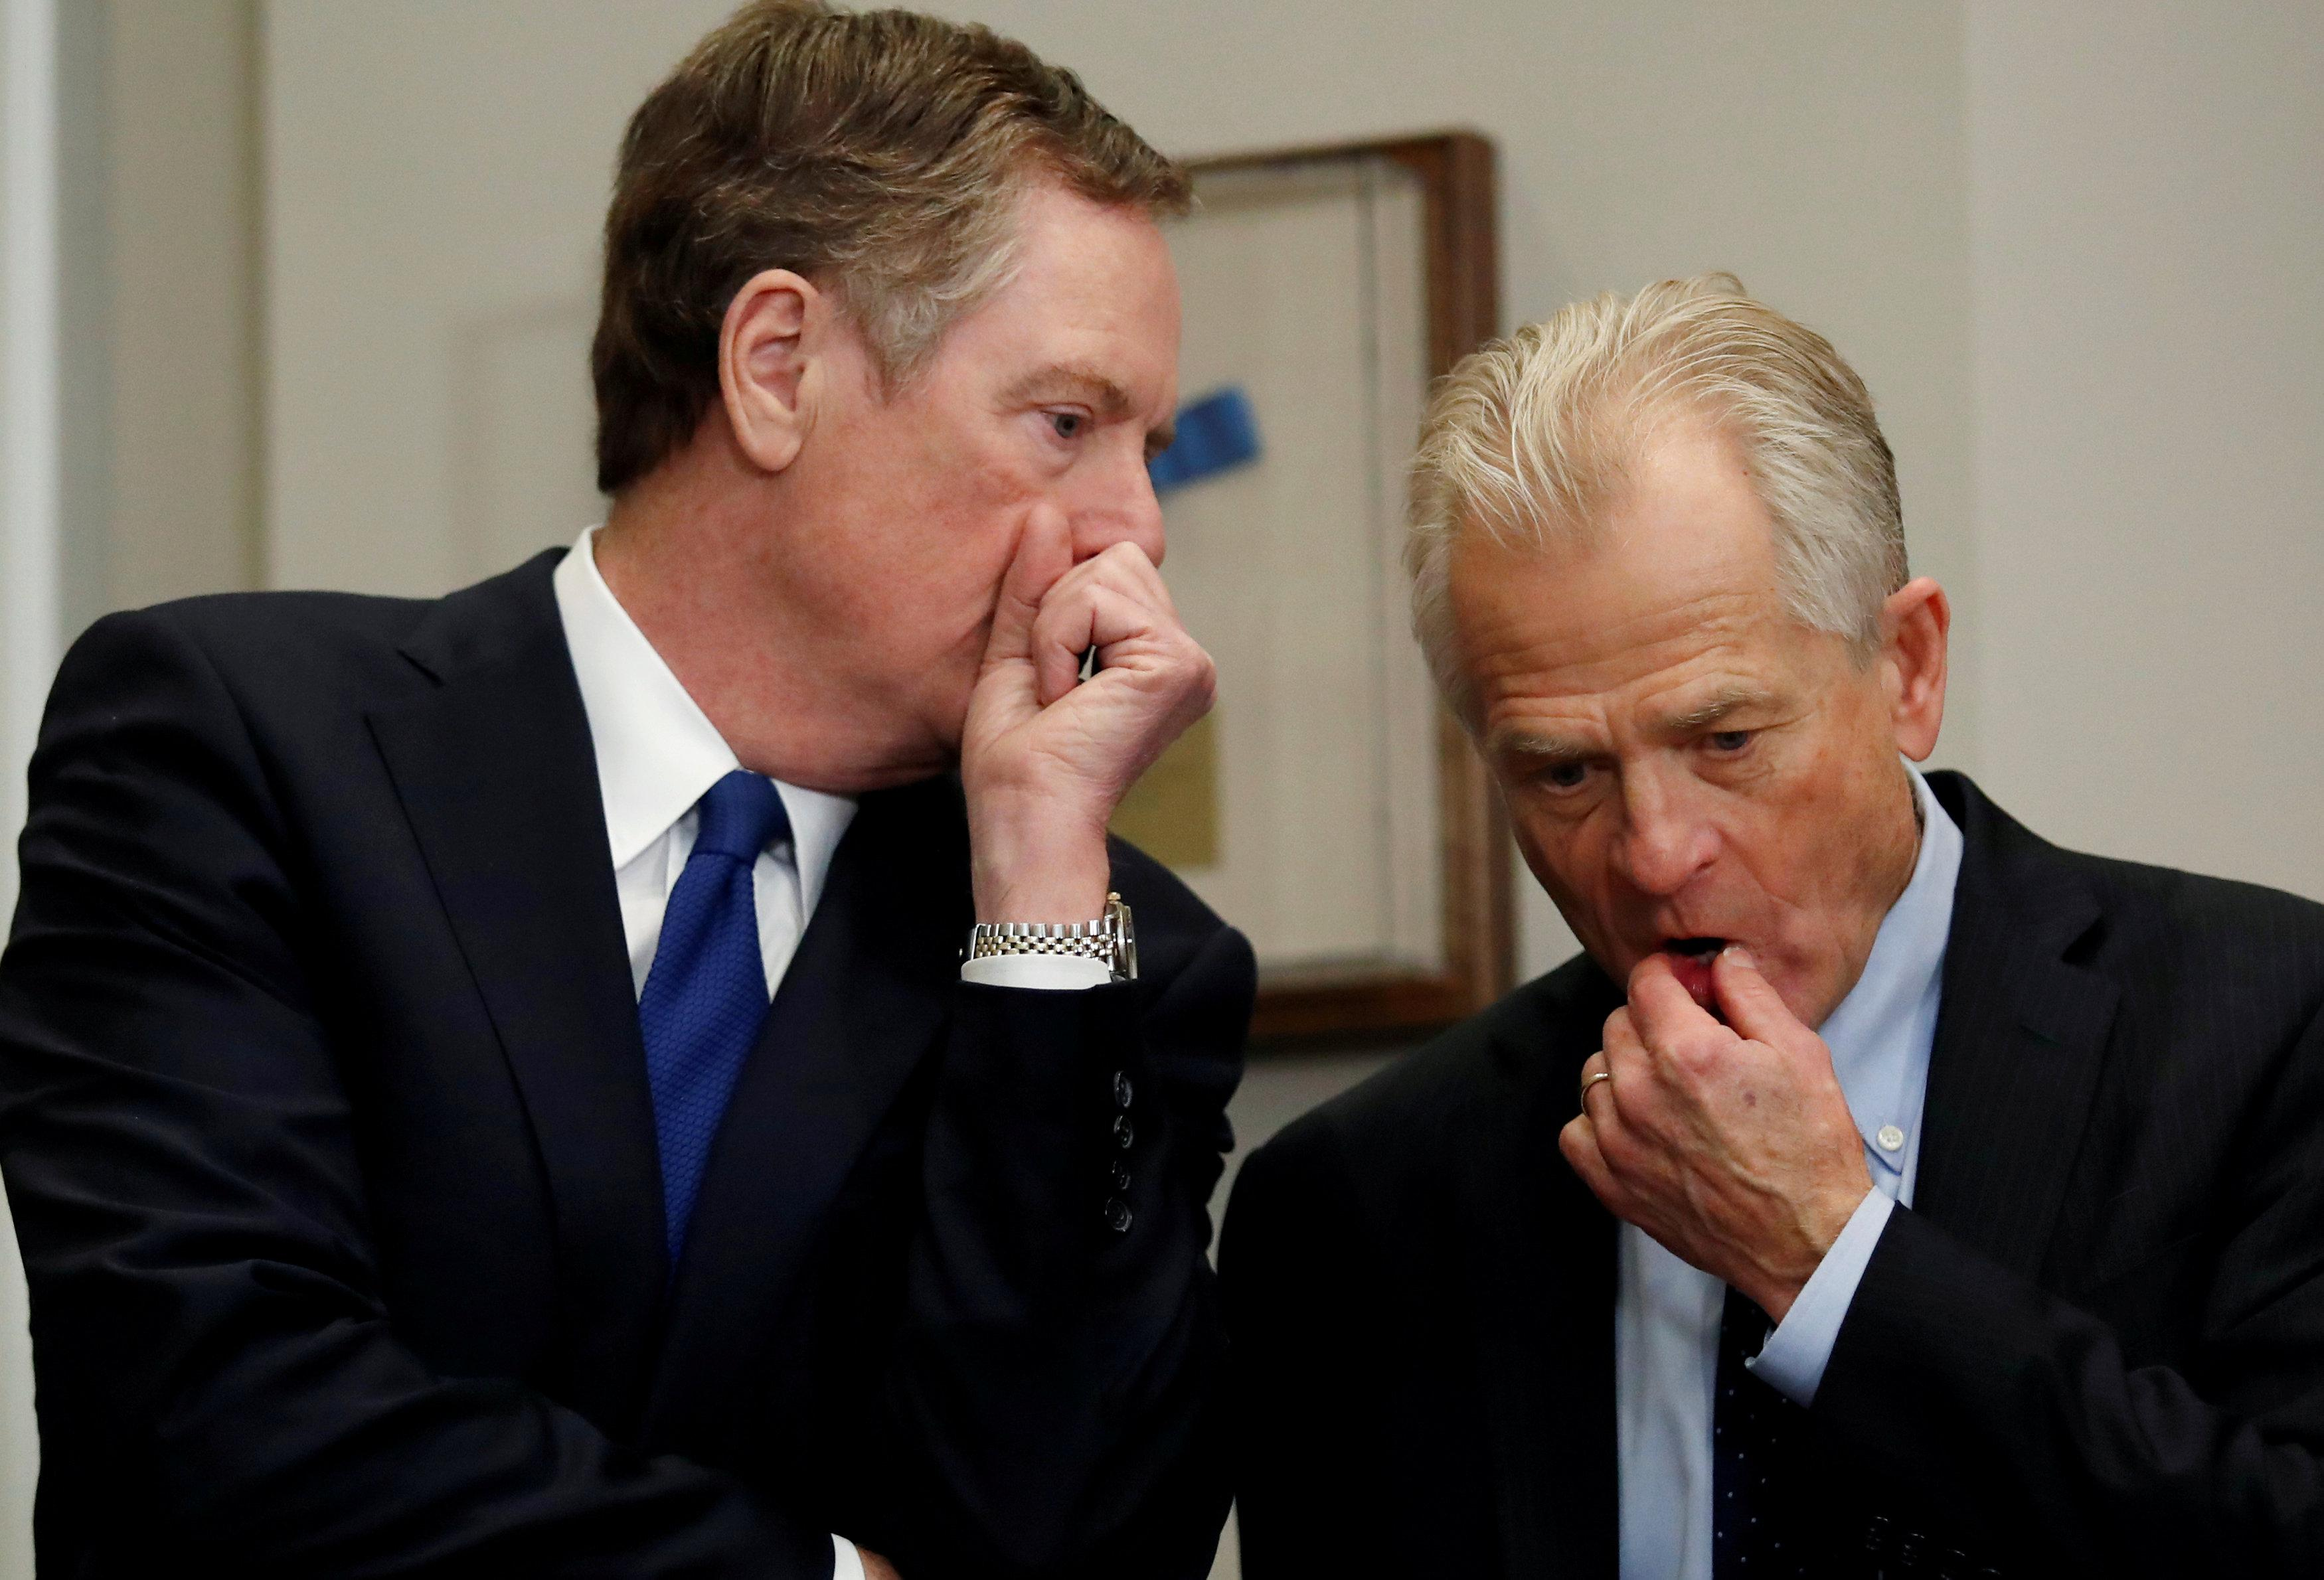 Robert Lighthizer, United States Trade Representative, and Peter Navarro chat while they wait for U.S. President Donald Trump to arrive to make an announcement about new tariffs for steel and aluminum imports at the White House in Washington, U.S. March 8, 2018. Leah Millis